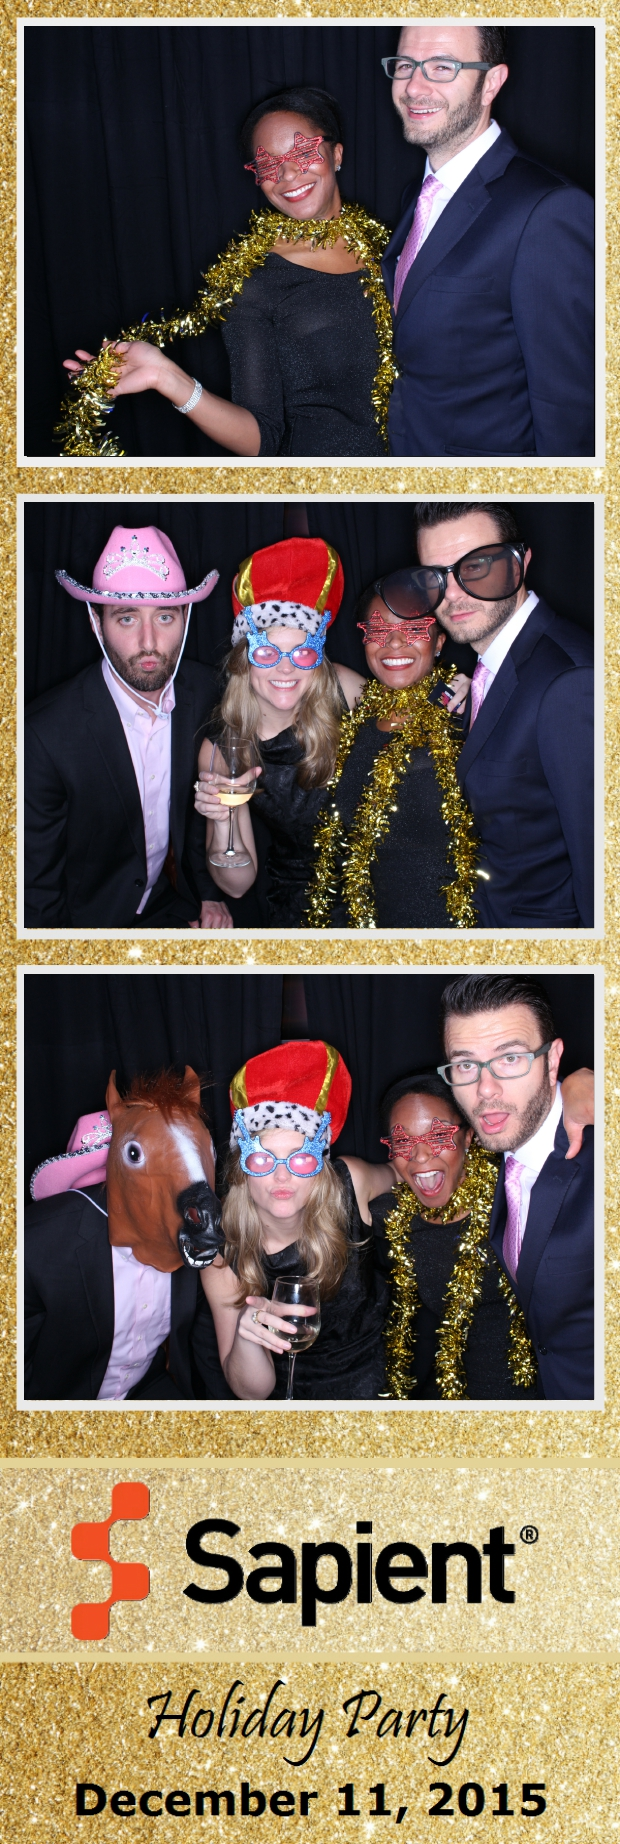 Guest House Events Photo Booth Sapient Holiday Party (74).jpg